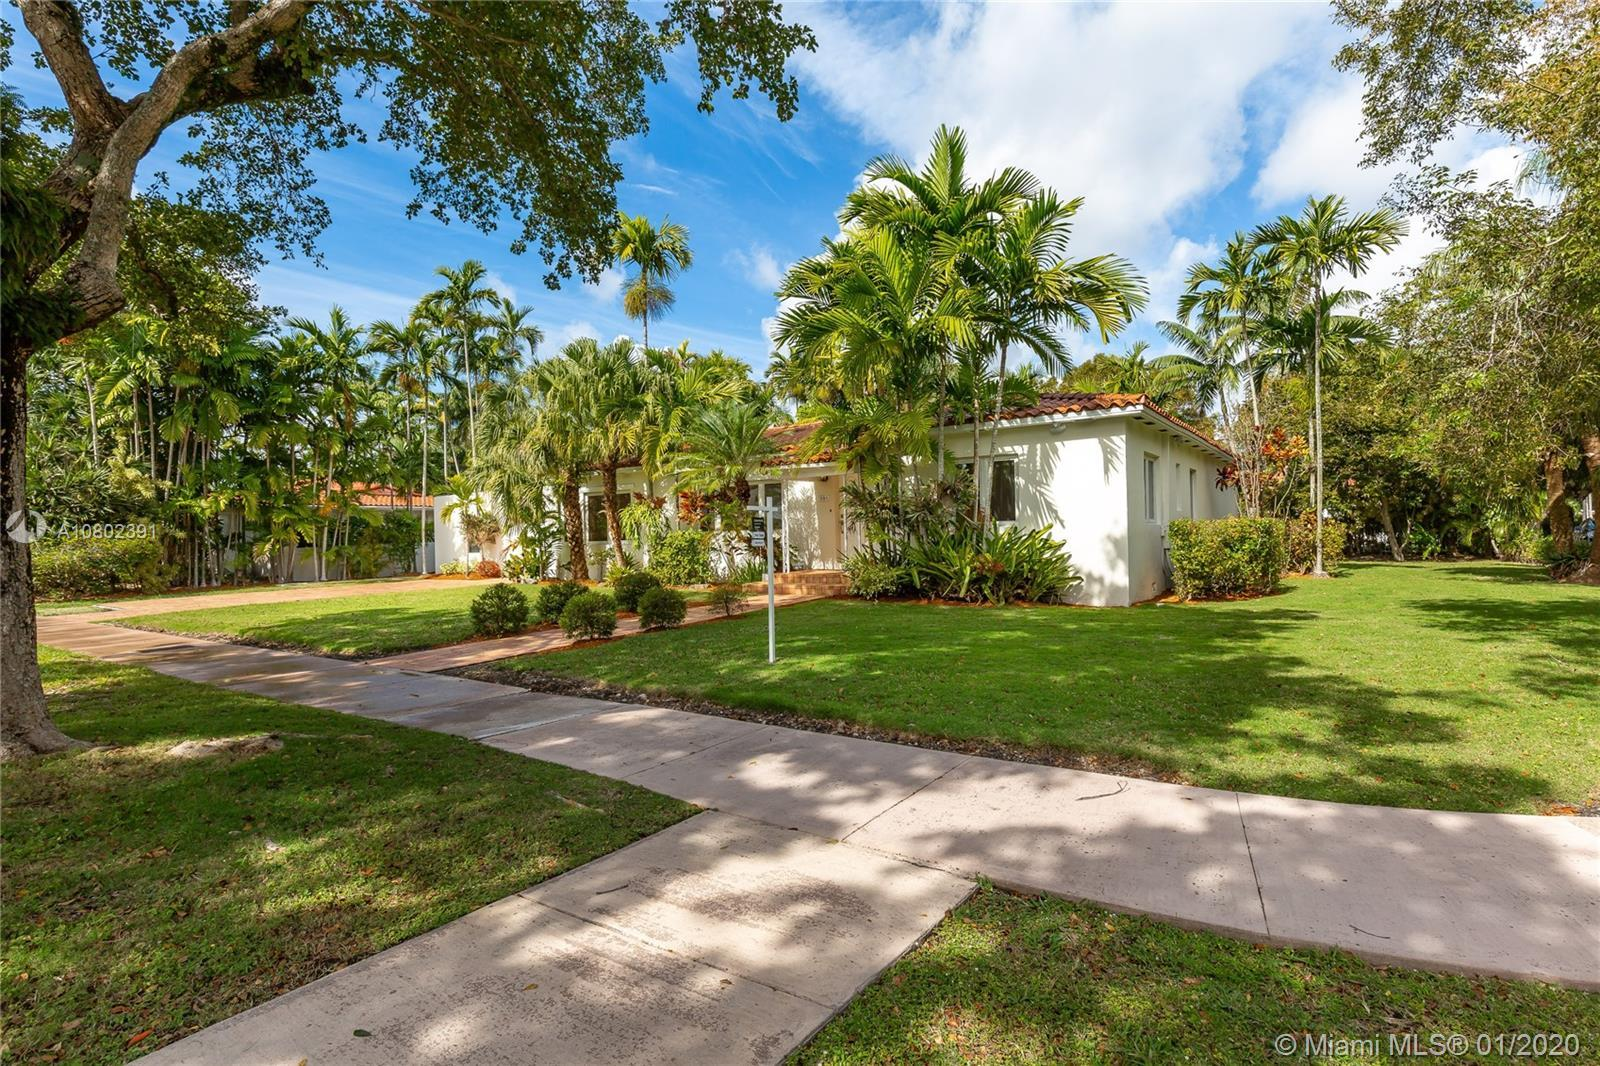 505 Palermo Ave, Coral Gables, FL, 33134